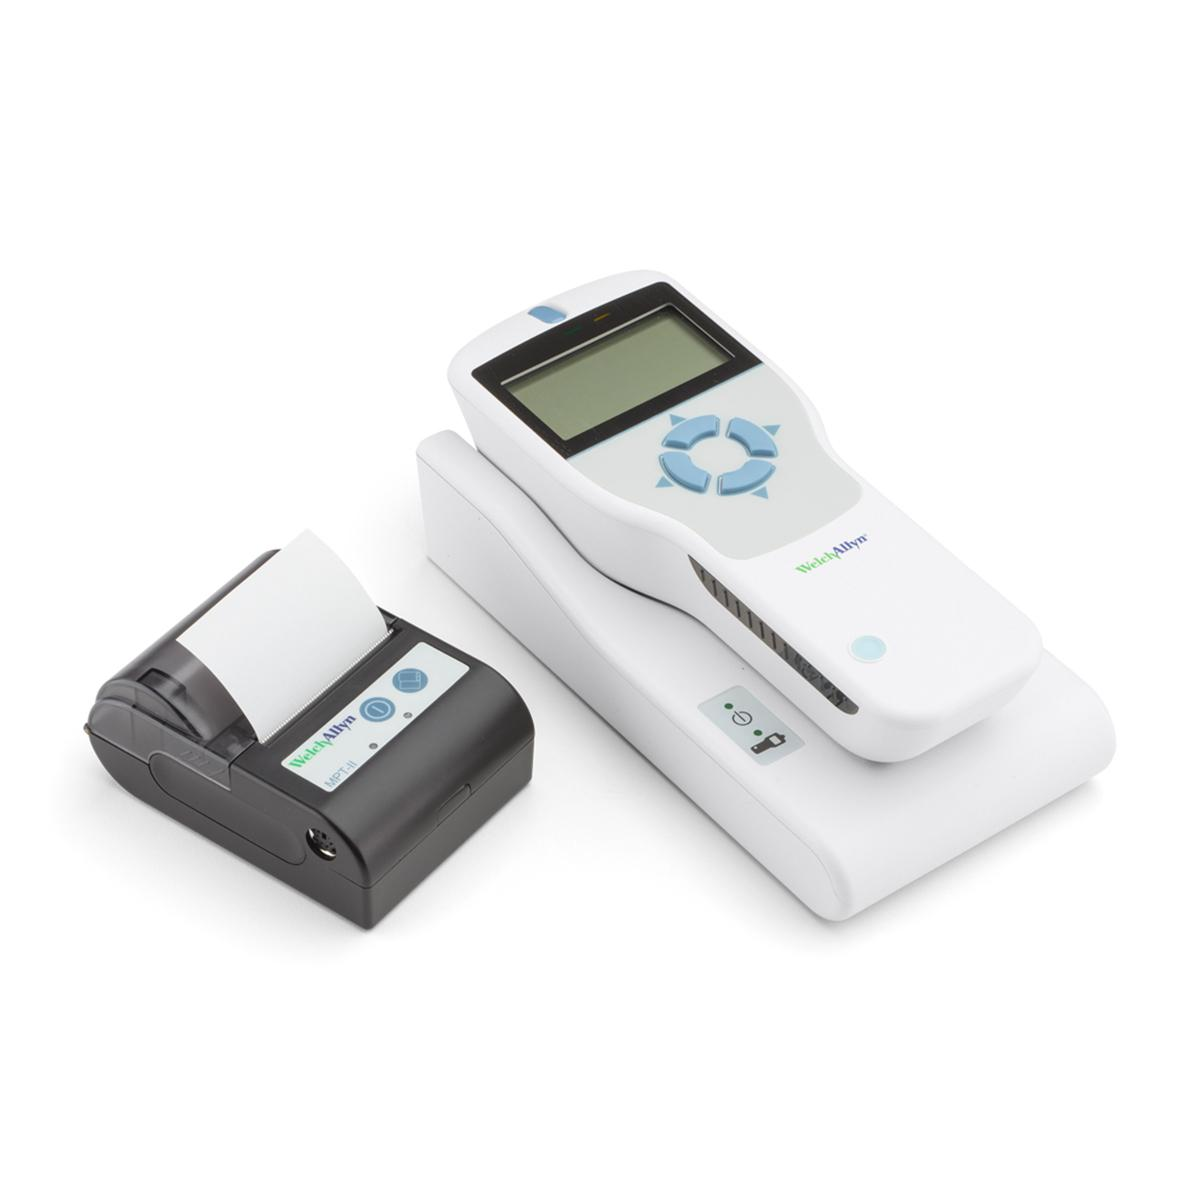 MicroTymp 4 Portable Tympanometer with printer